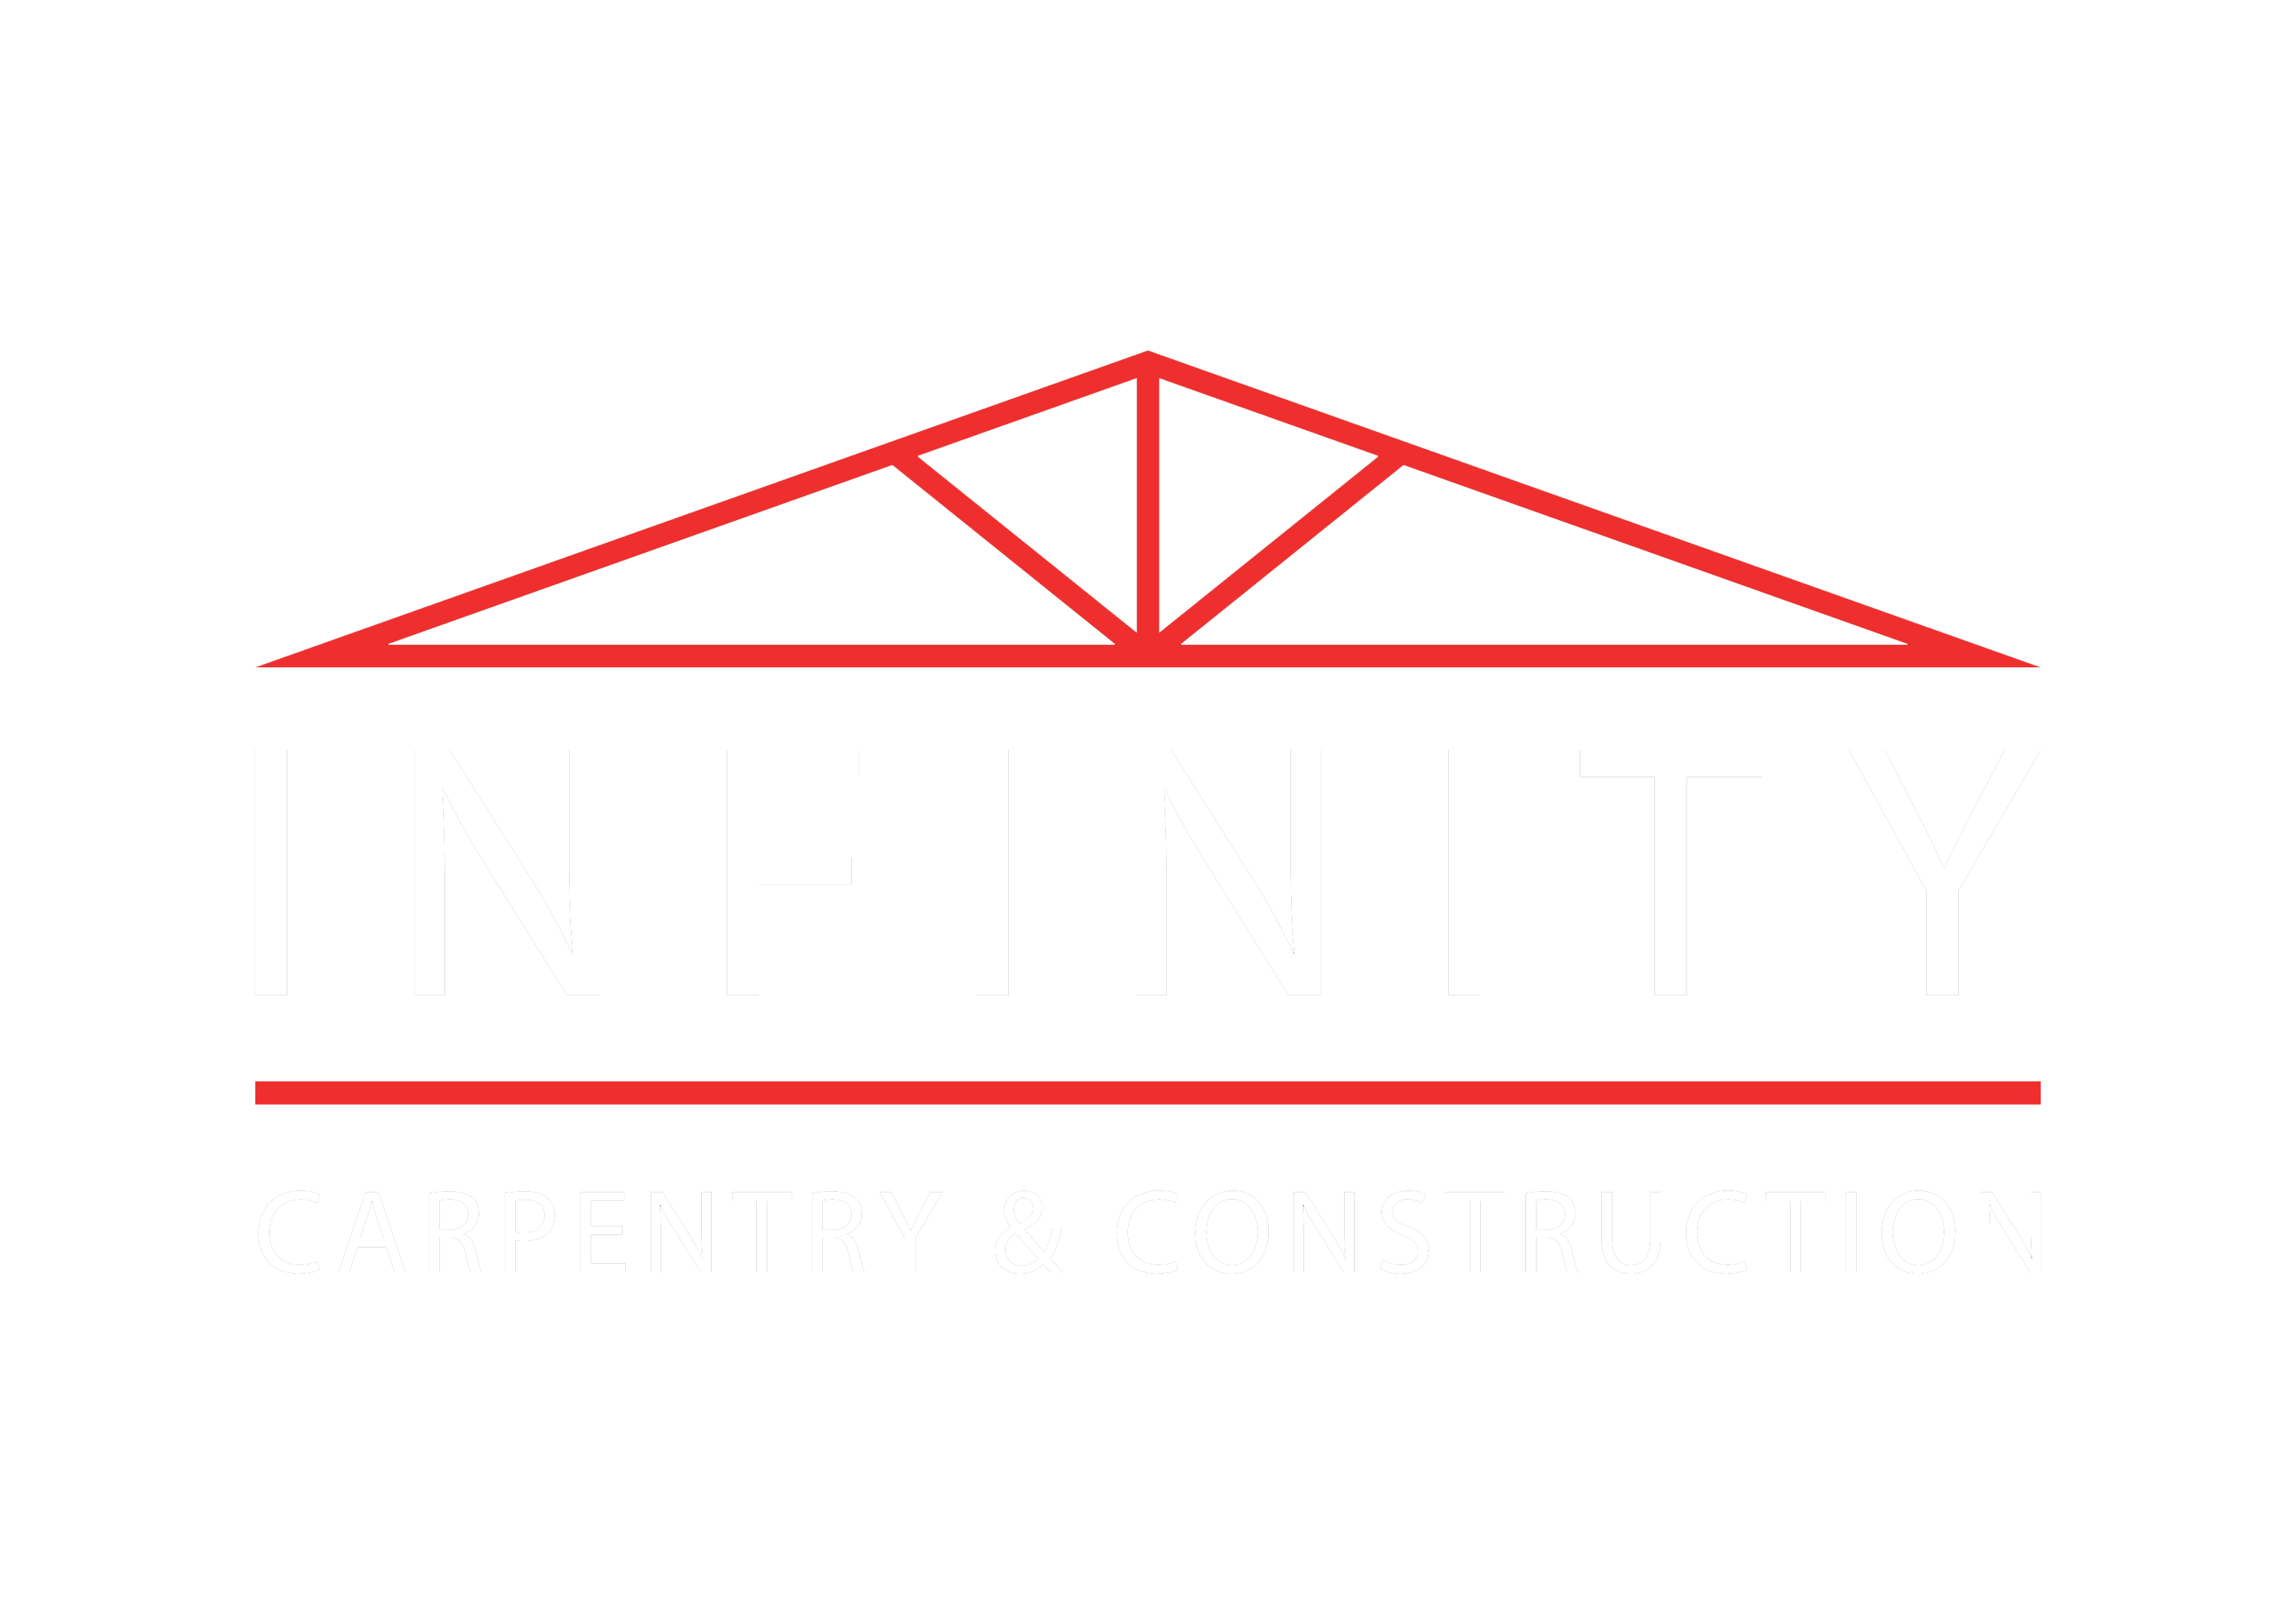 Infinity Carpentry Building & Construction